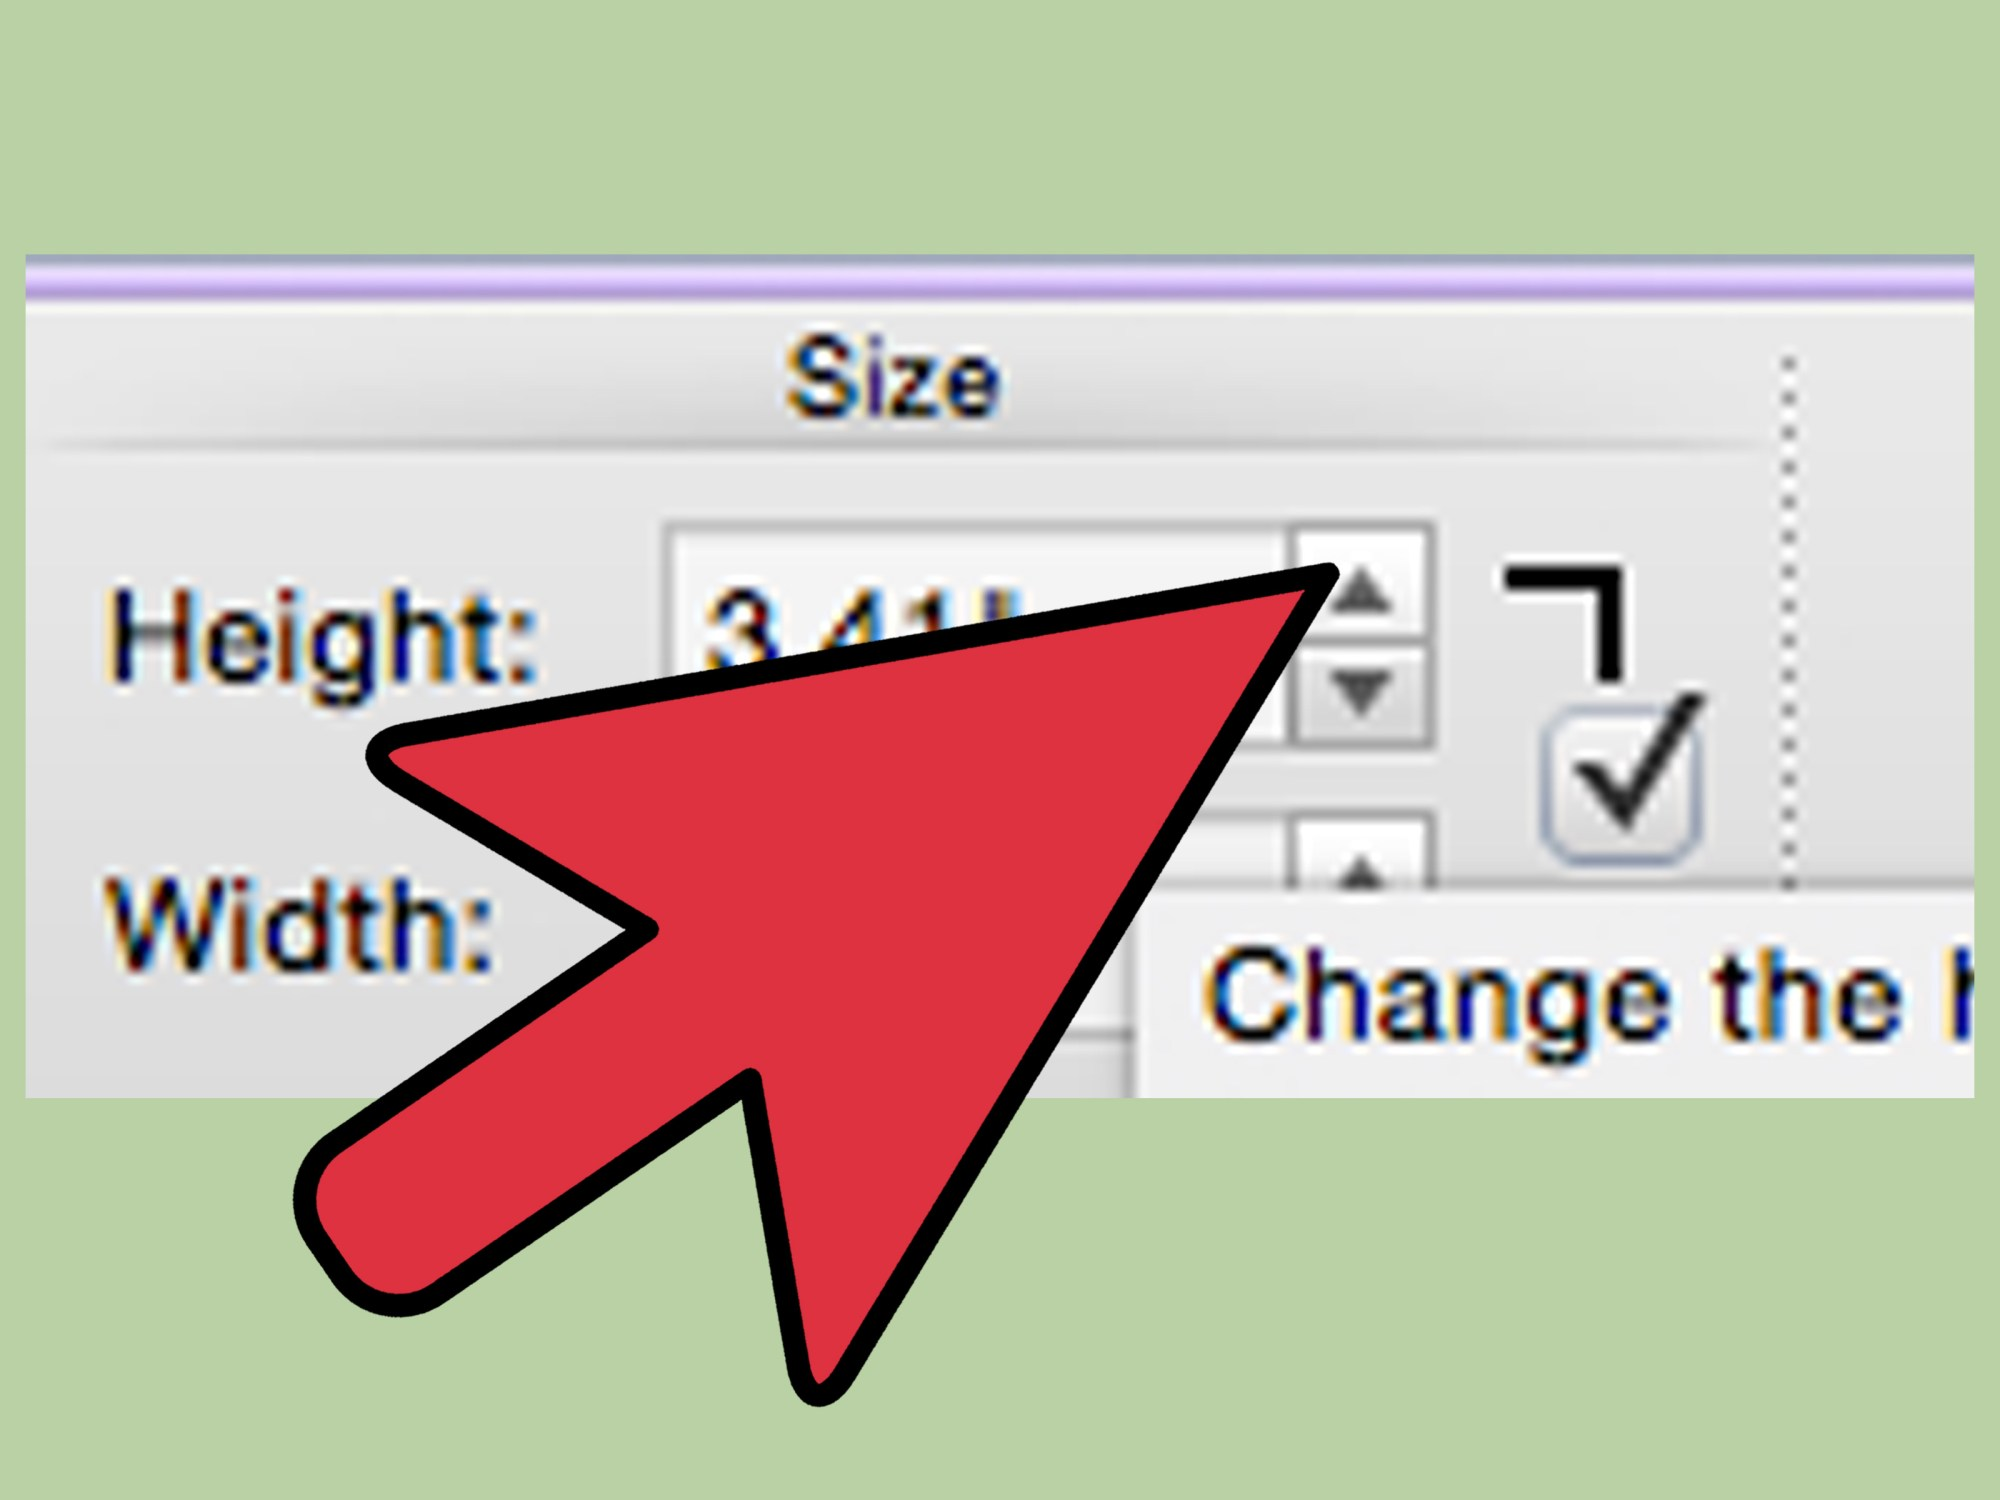 hight resolution of how to add images to a microsoft word document